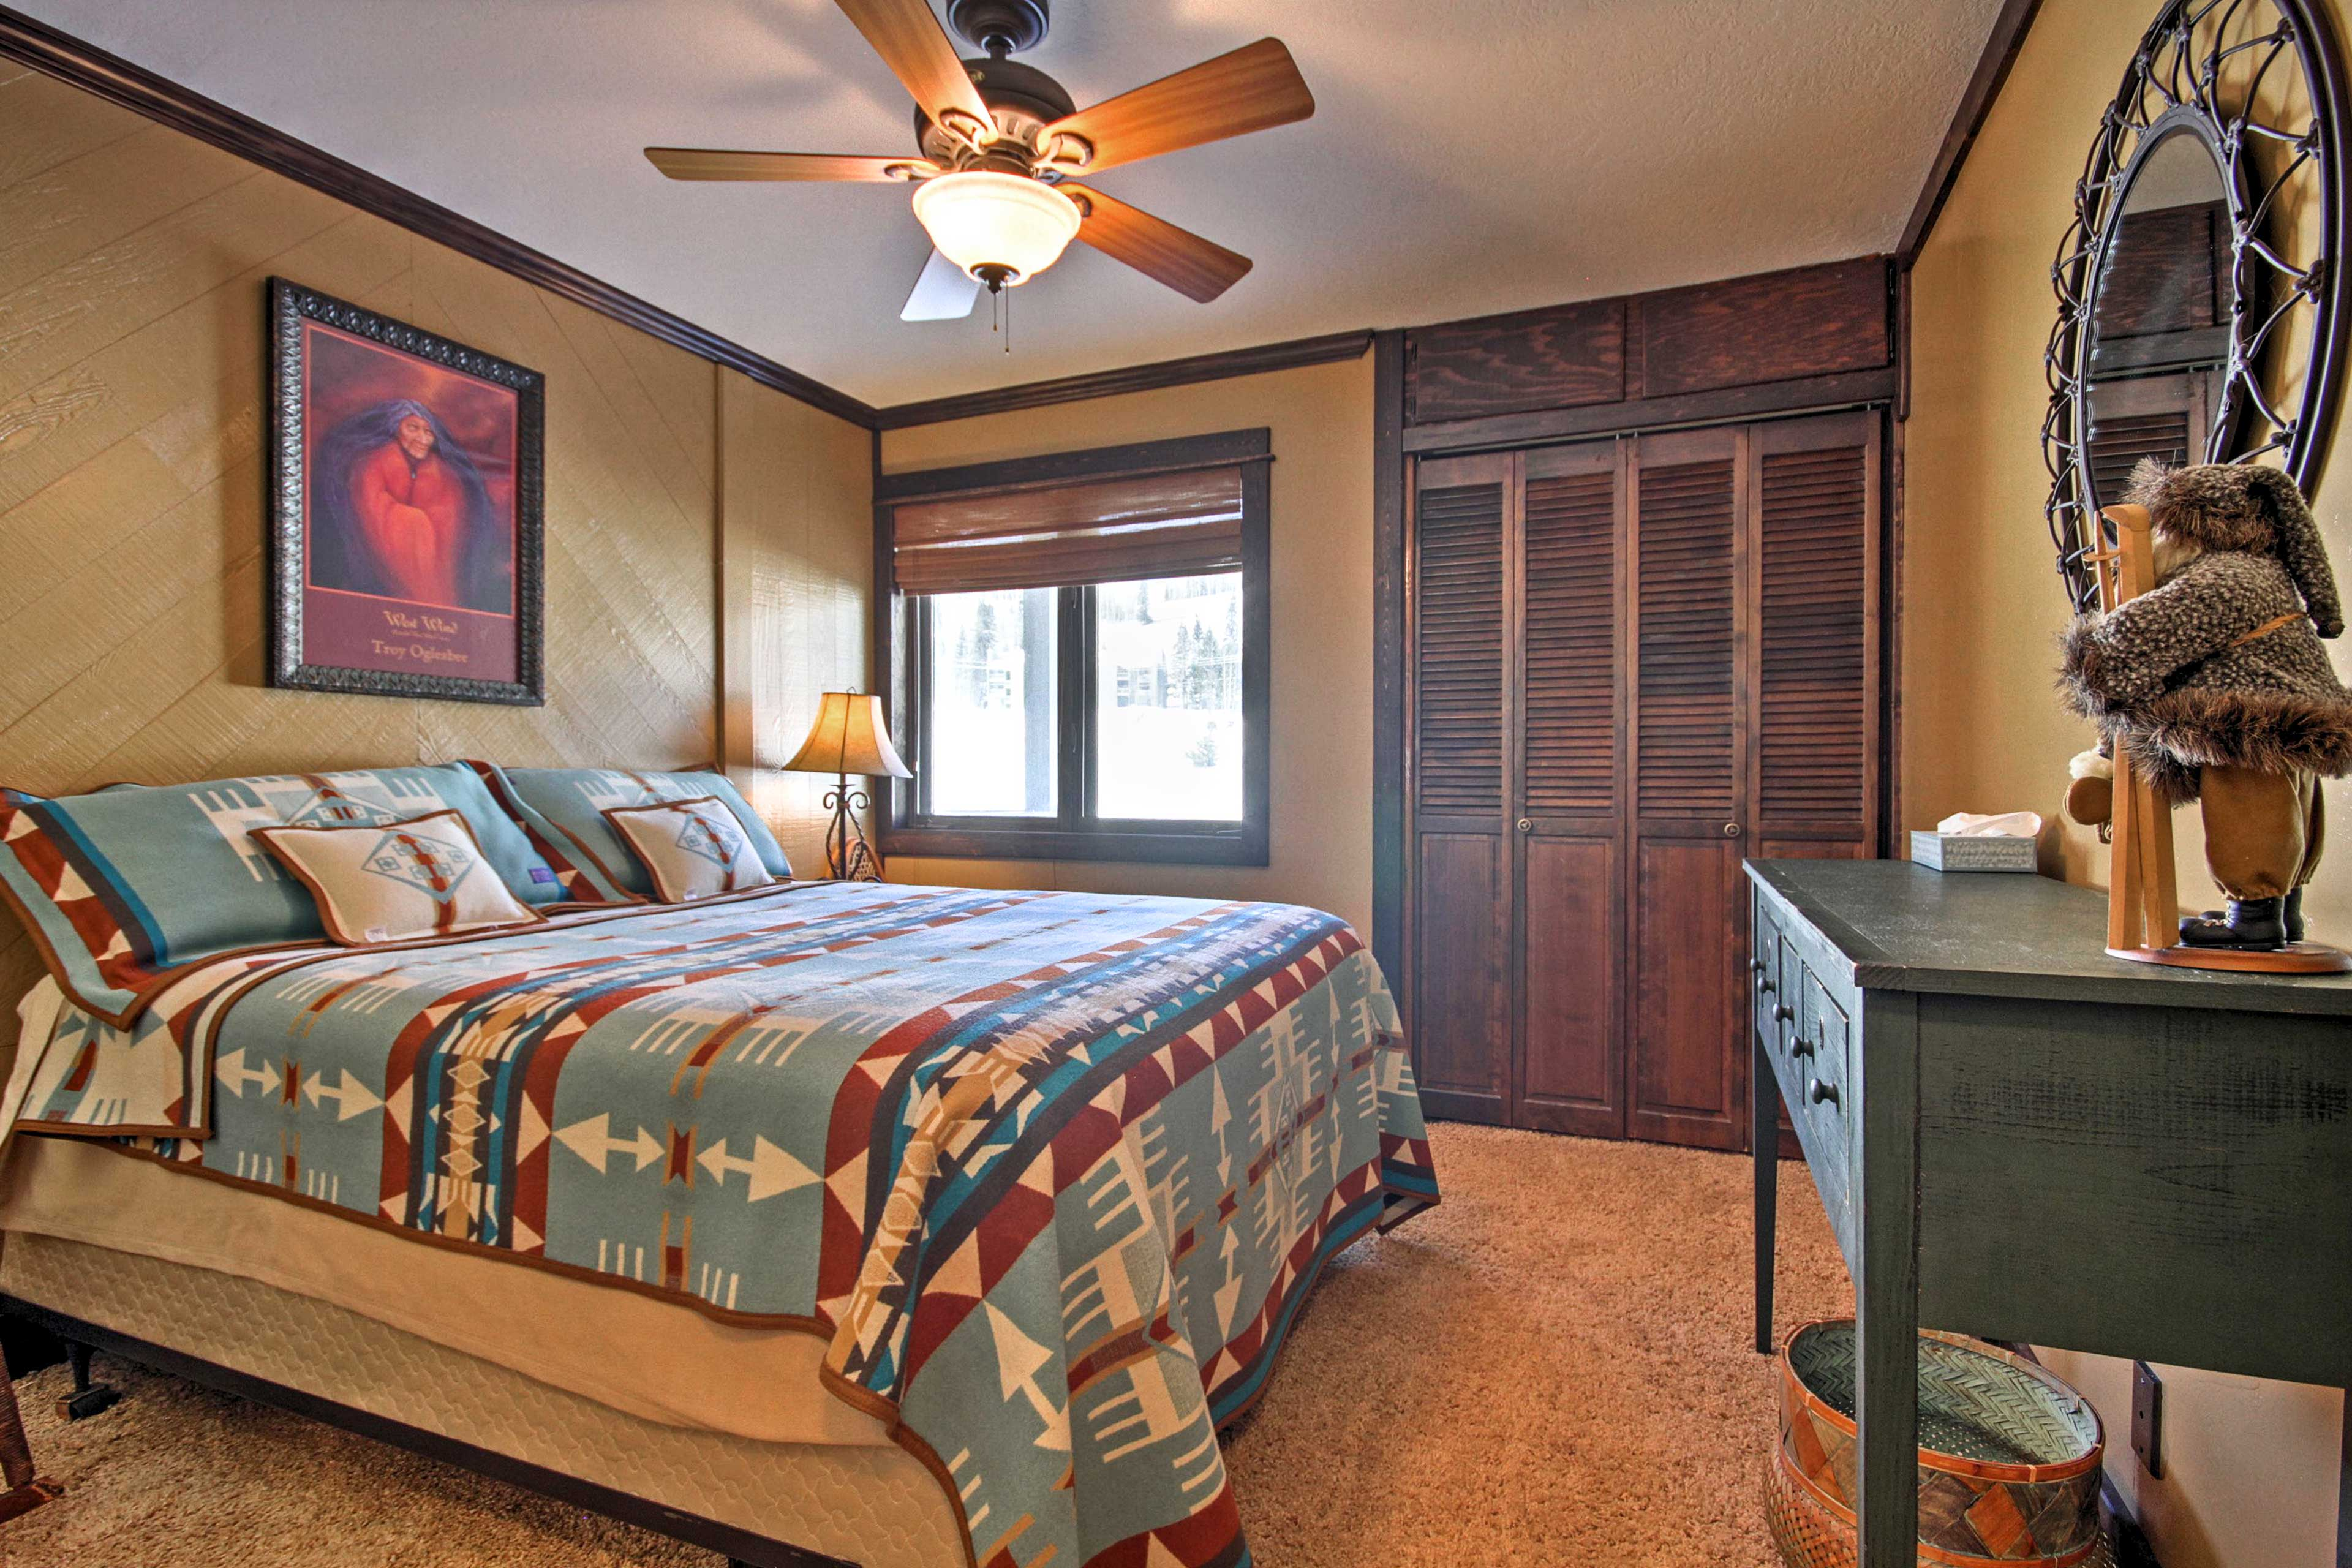 The beds feature Pendleton bedding and feather pillows.